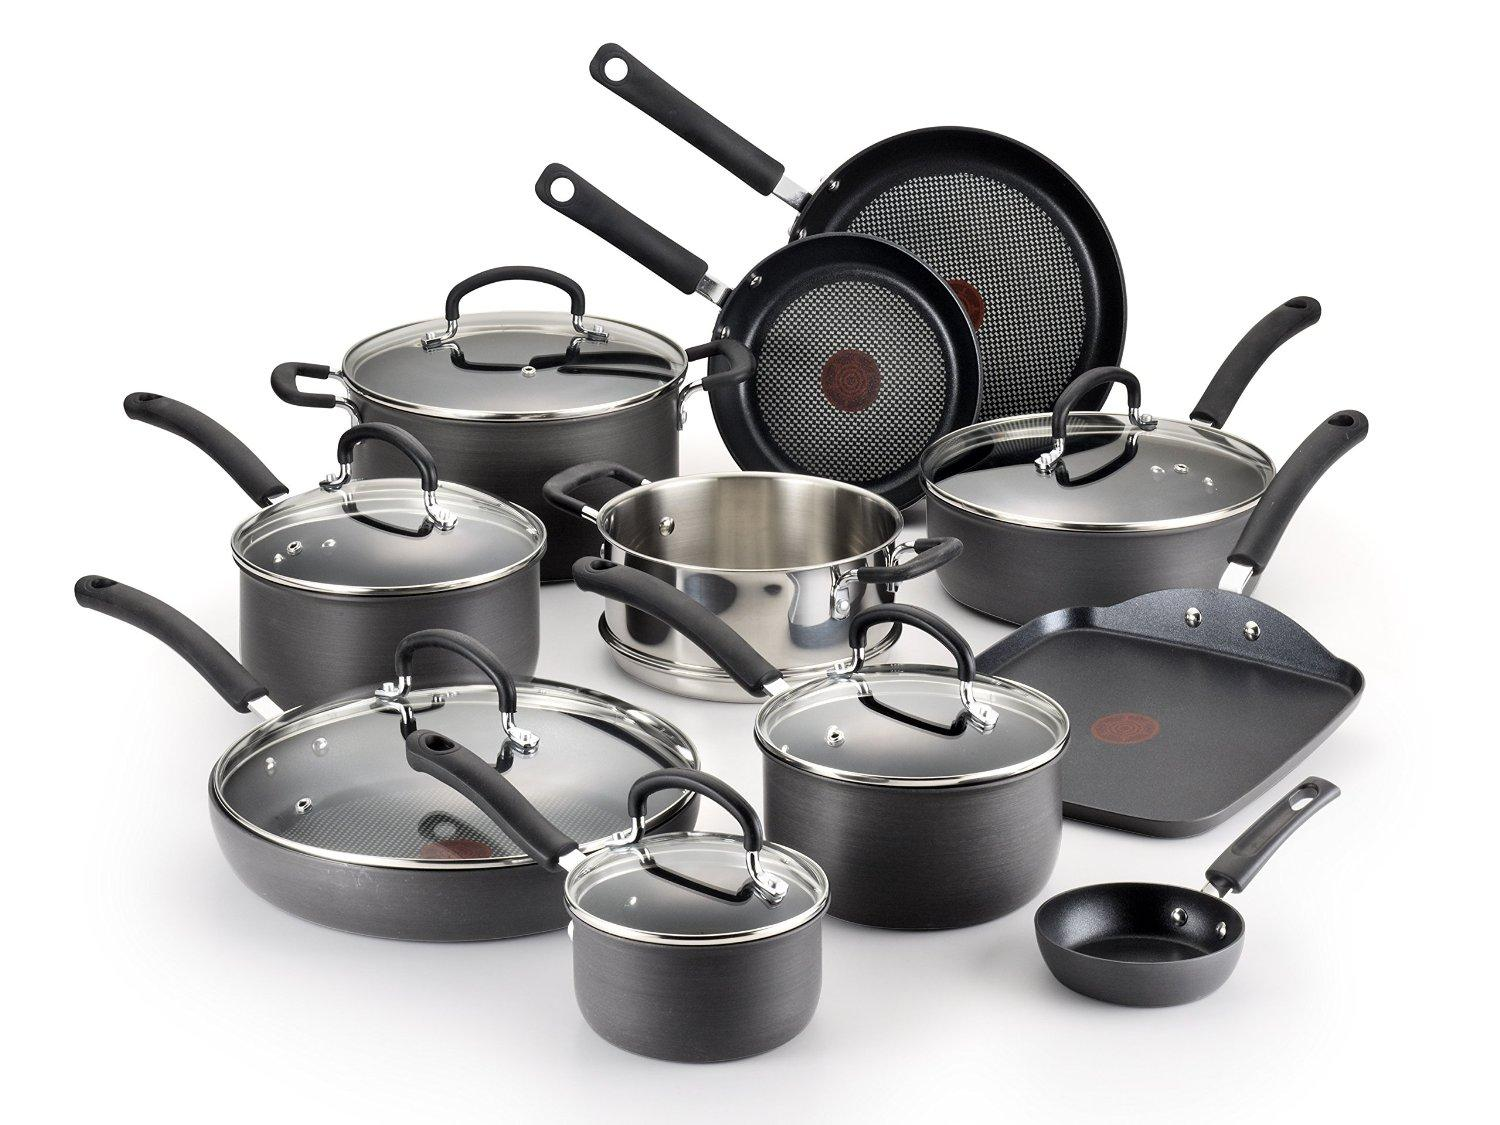 T-fal Ultimate Hard Anodized Nonstick Cookware Set, 17-Piece